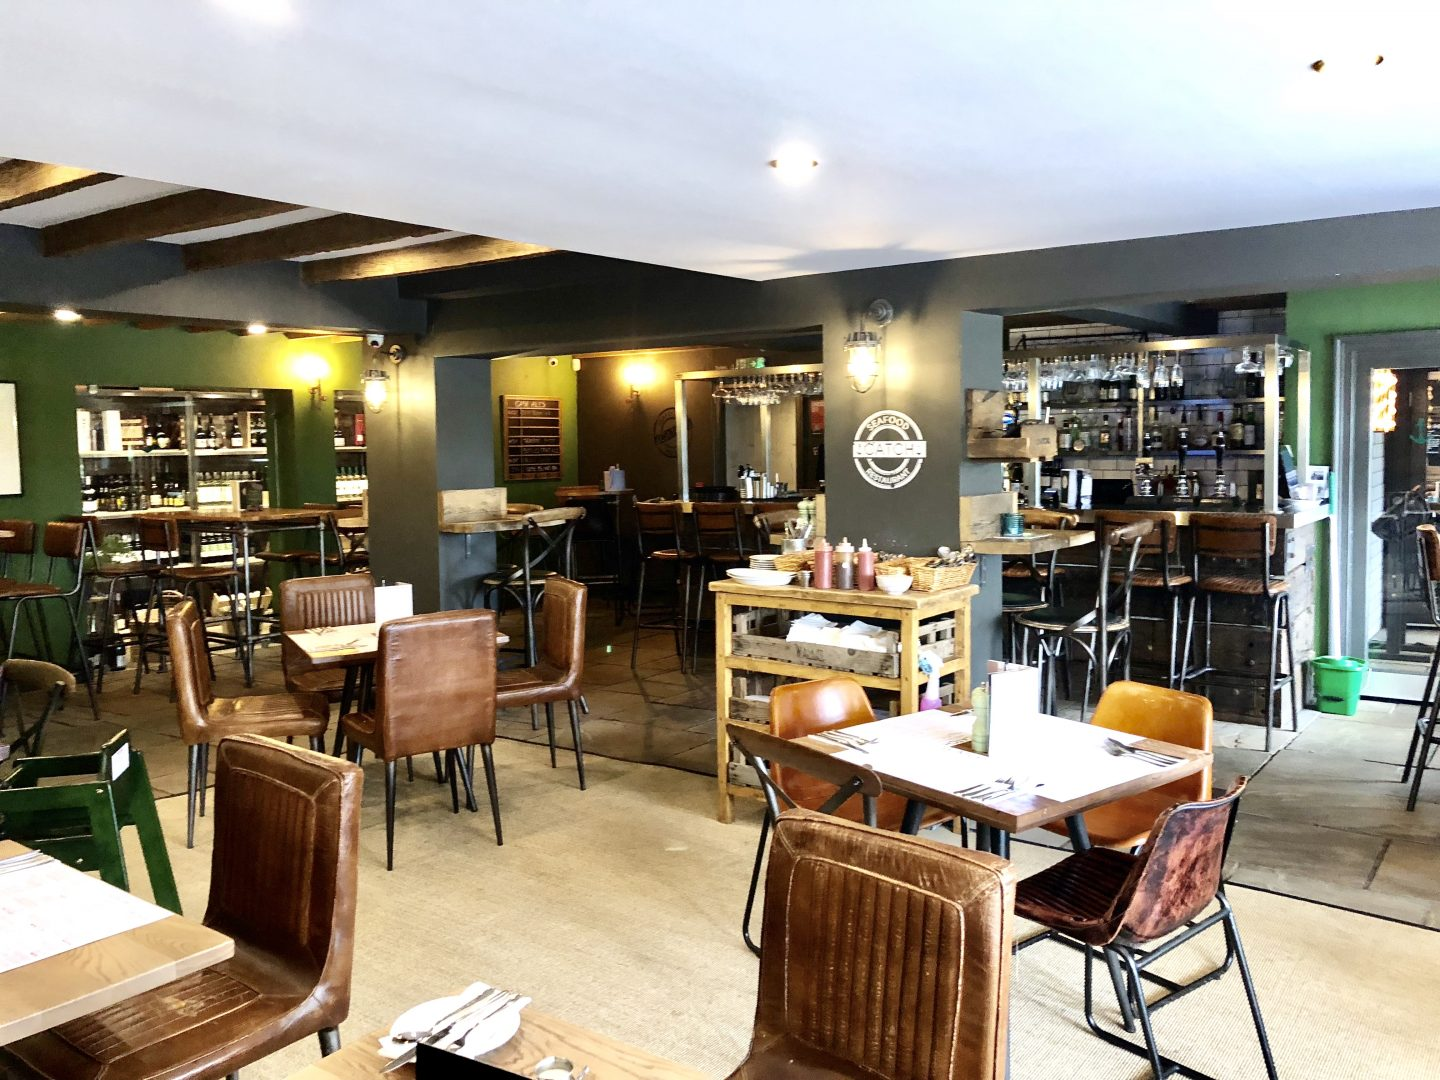 Image shows bar area at Catch Ponteland